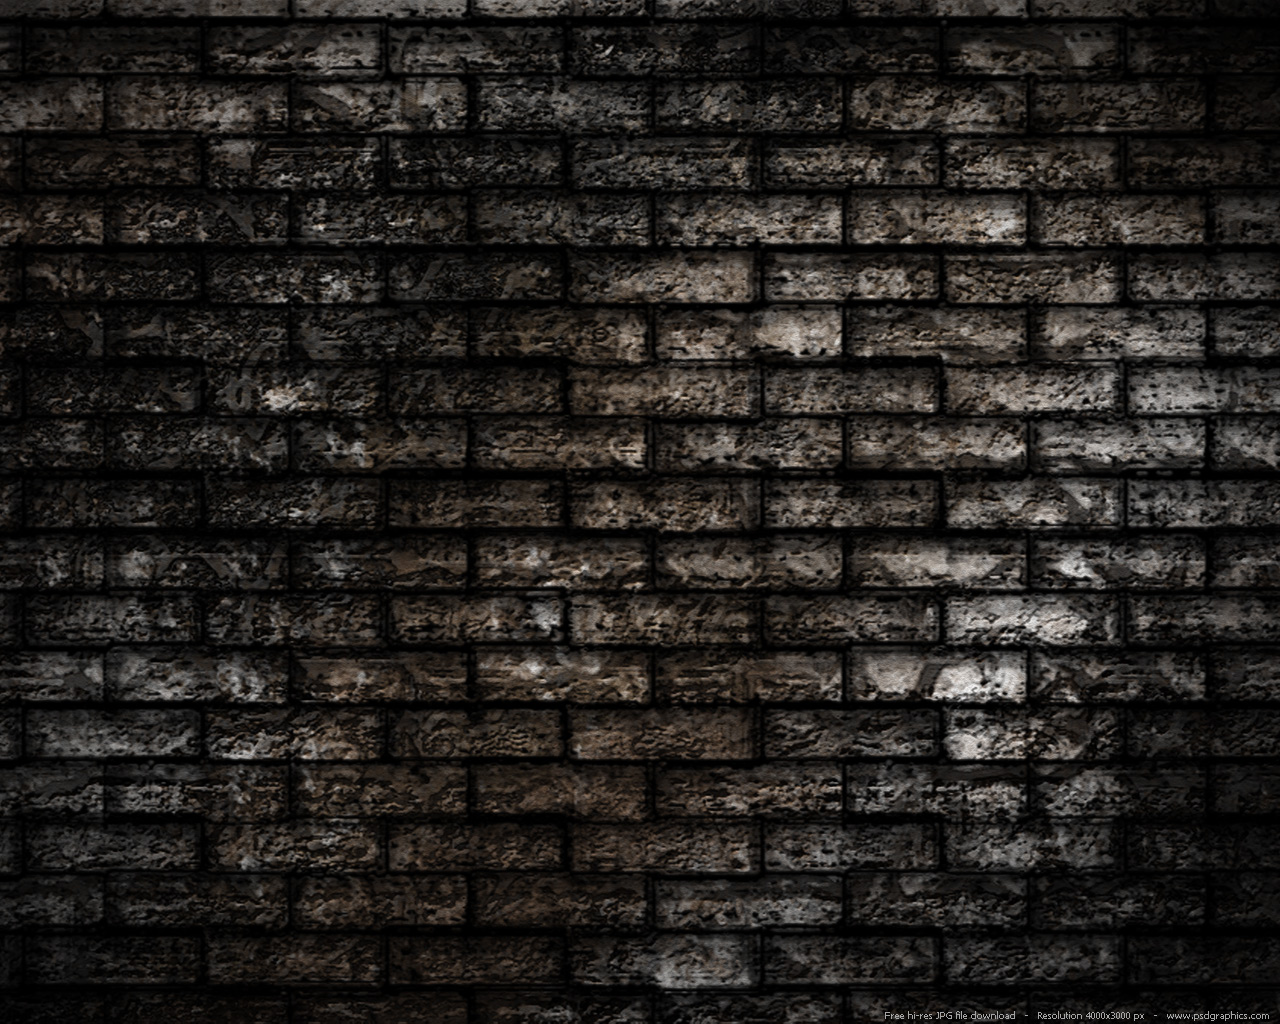 Grunge brick wall background psdgraphics for Wallpaper images for house walls